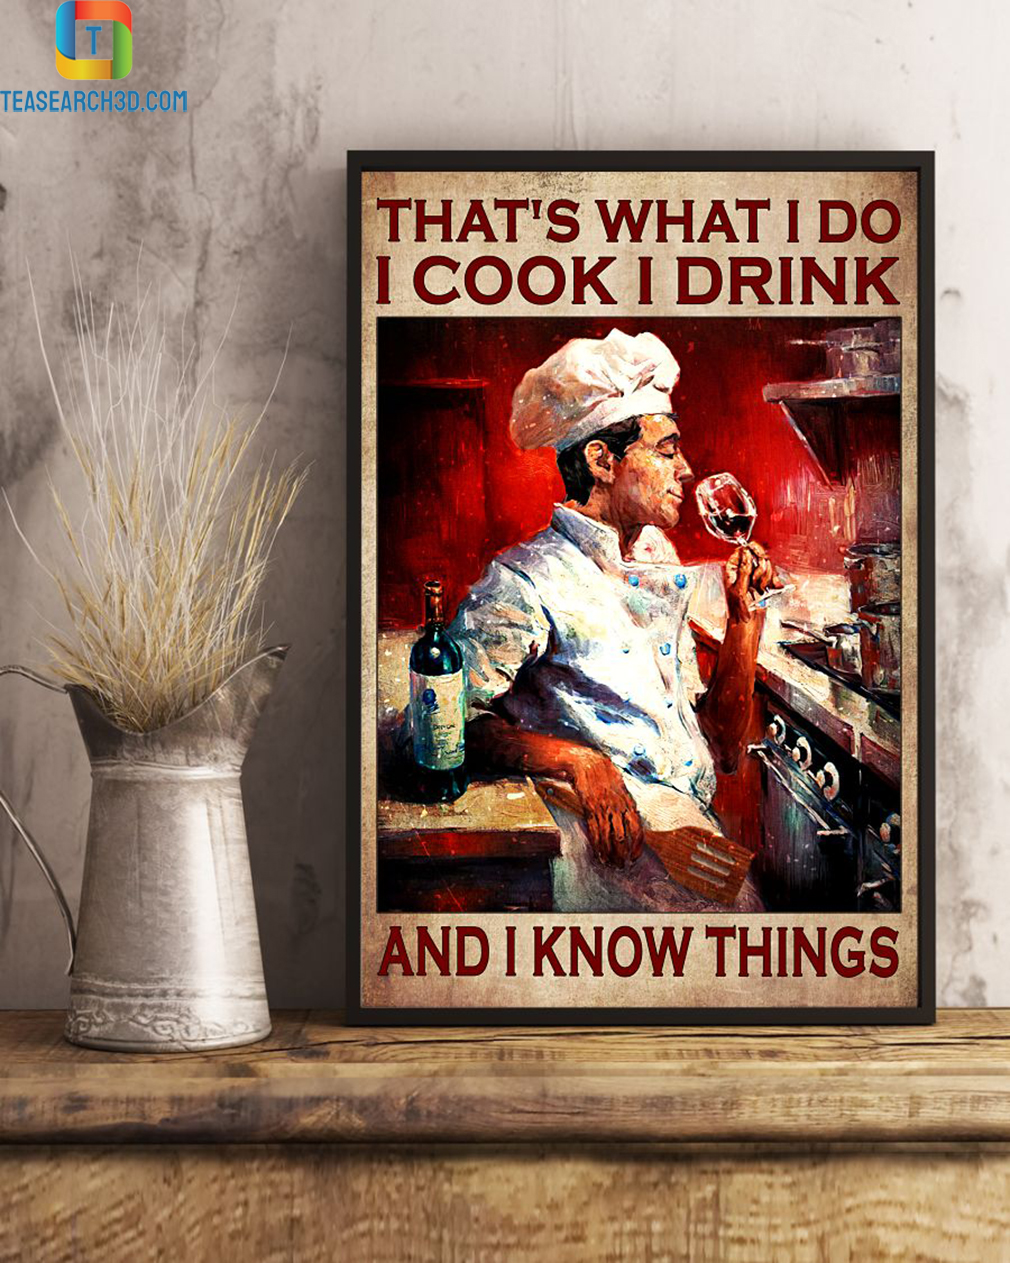 Chef that's what I do I cook I drink and I know things poster A2